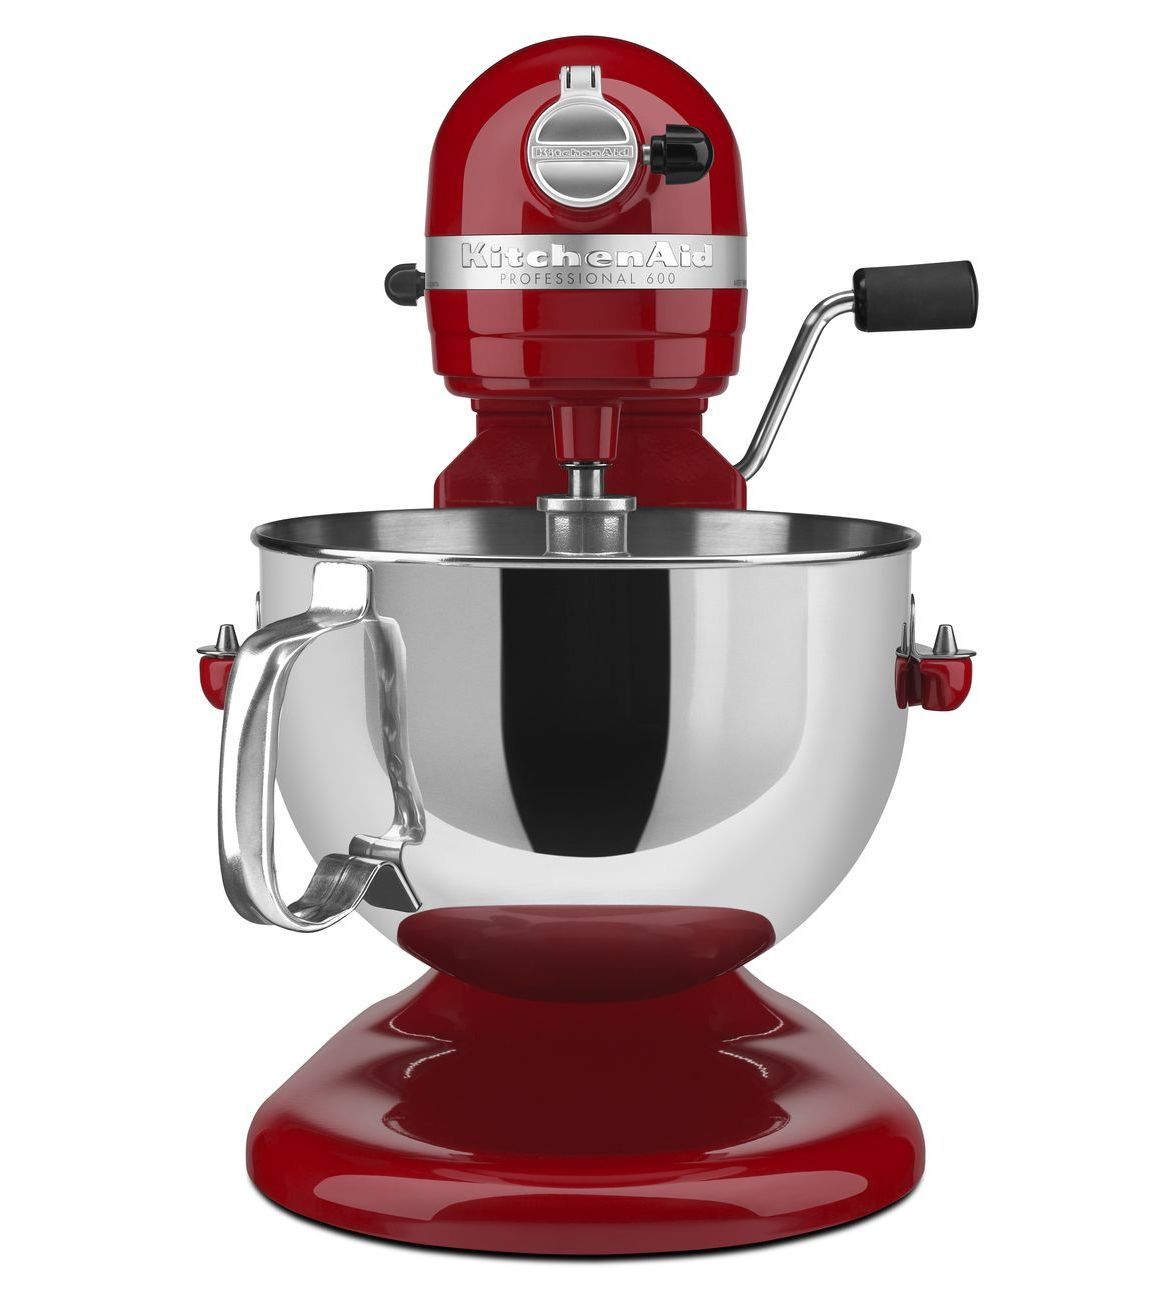 KitchenAid Empire Red 6 Qt. Bowl Lift Professional 600 Series ... on kitchenaid waffle maker red, kitchenaid utensils red, kitchenaid chopper in red, kitchenaid candy apple red,